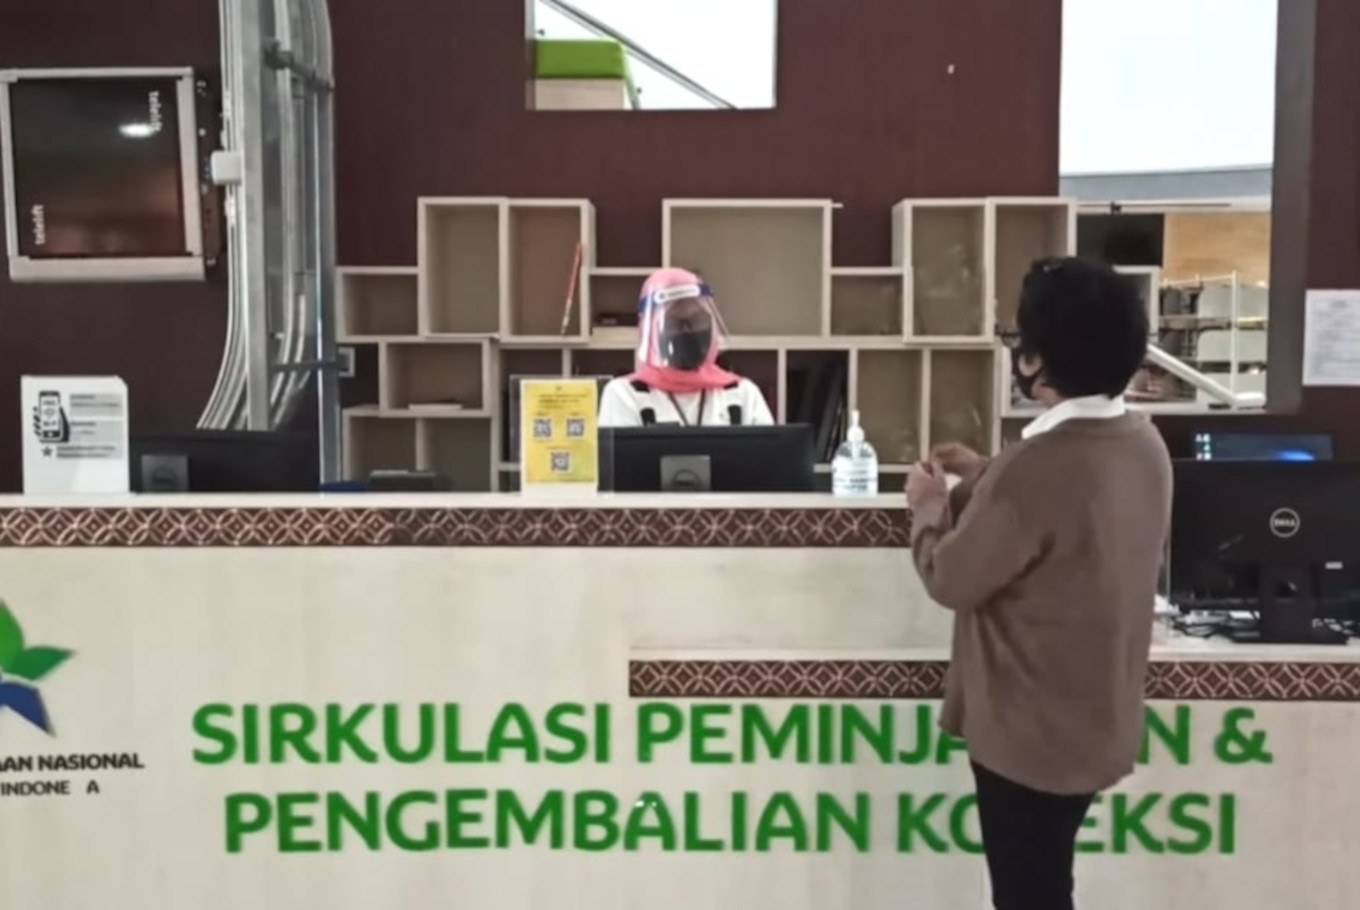 National Library of Indonesia reopens with new health protocols